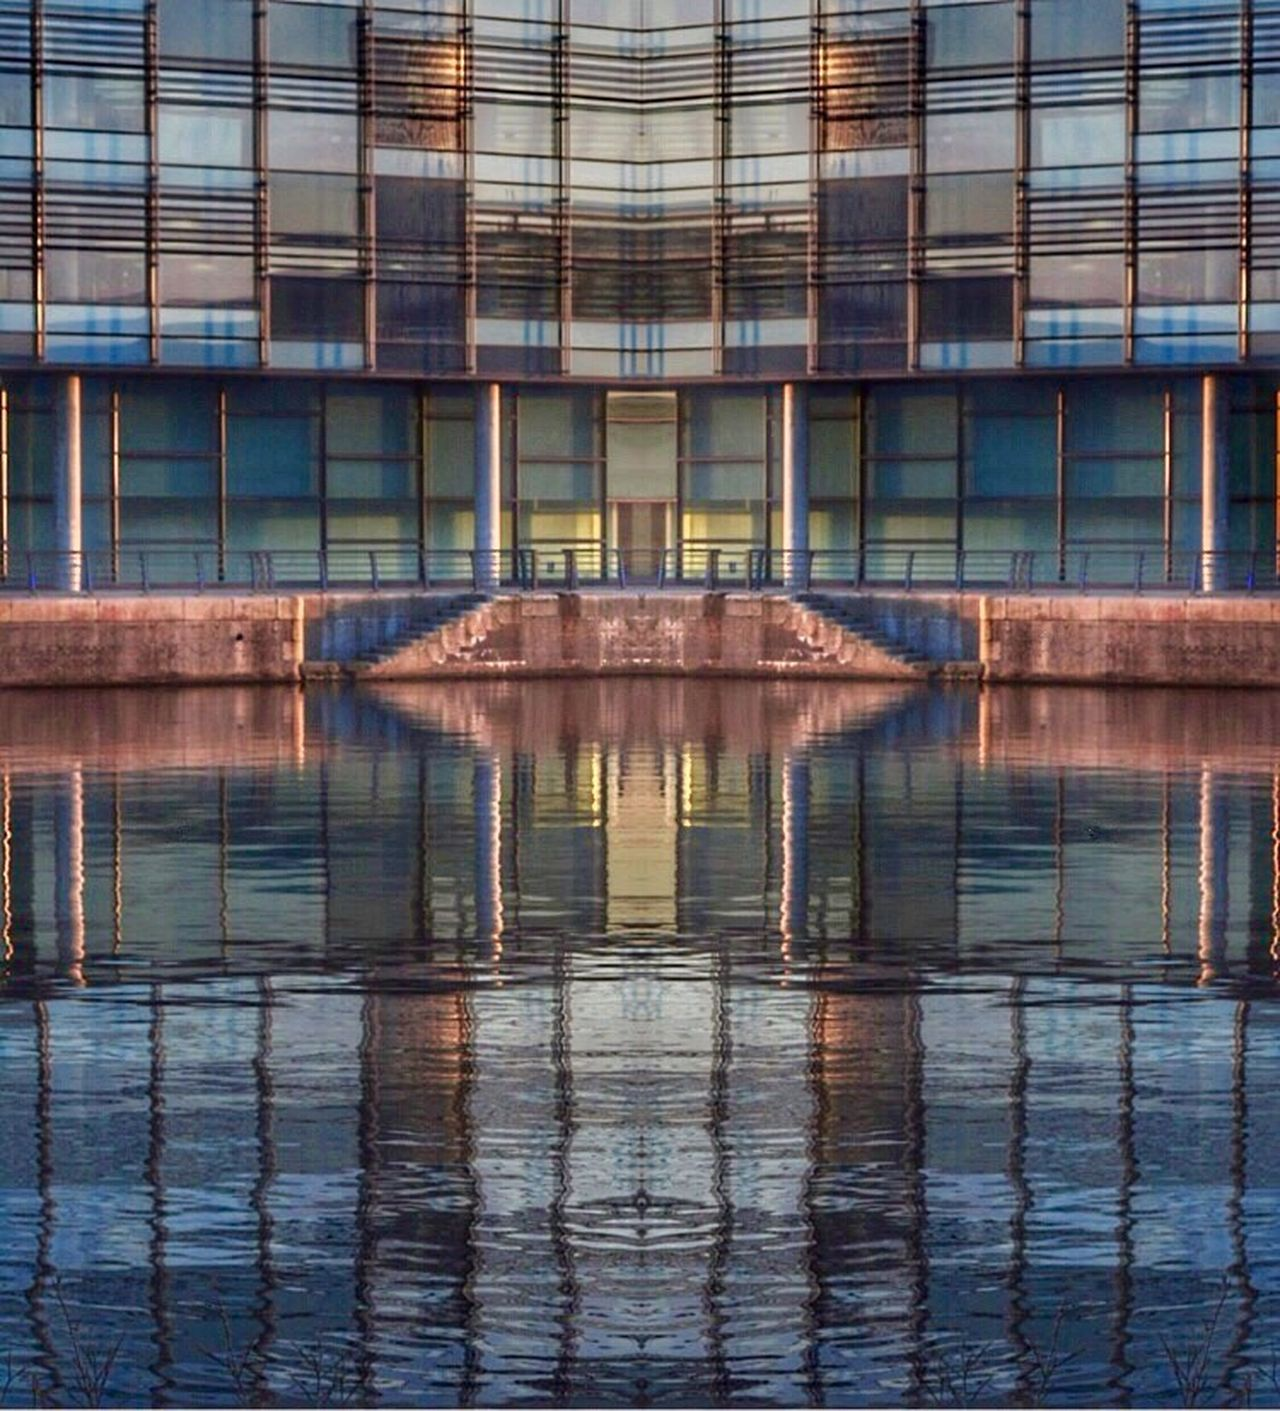 Building reflections. Reflection_collection Building Reflections Reflections In The Water Architectural Detail Architecture Eye4photography  Getty X EyeEm Urban Geometry Lines And Angles Modern Architecture Modern Building EyeEm Gallery Water EyeEm Design Building Exterior Built Structure Buildings